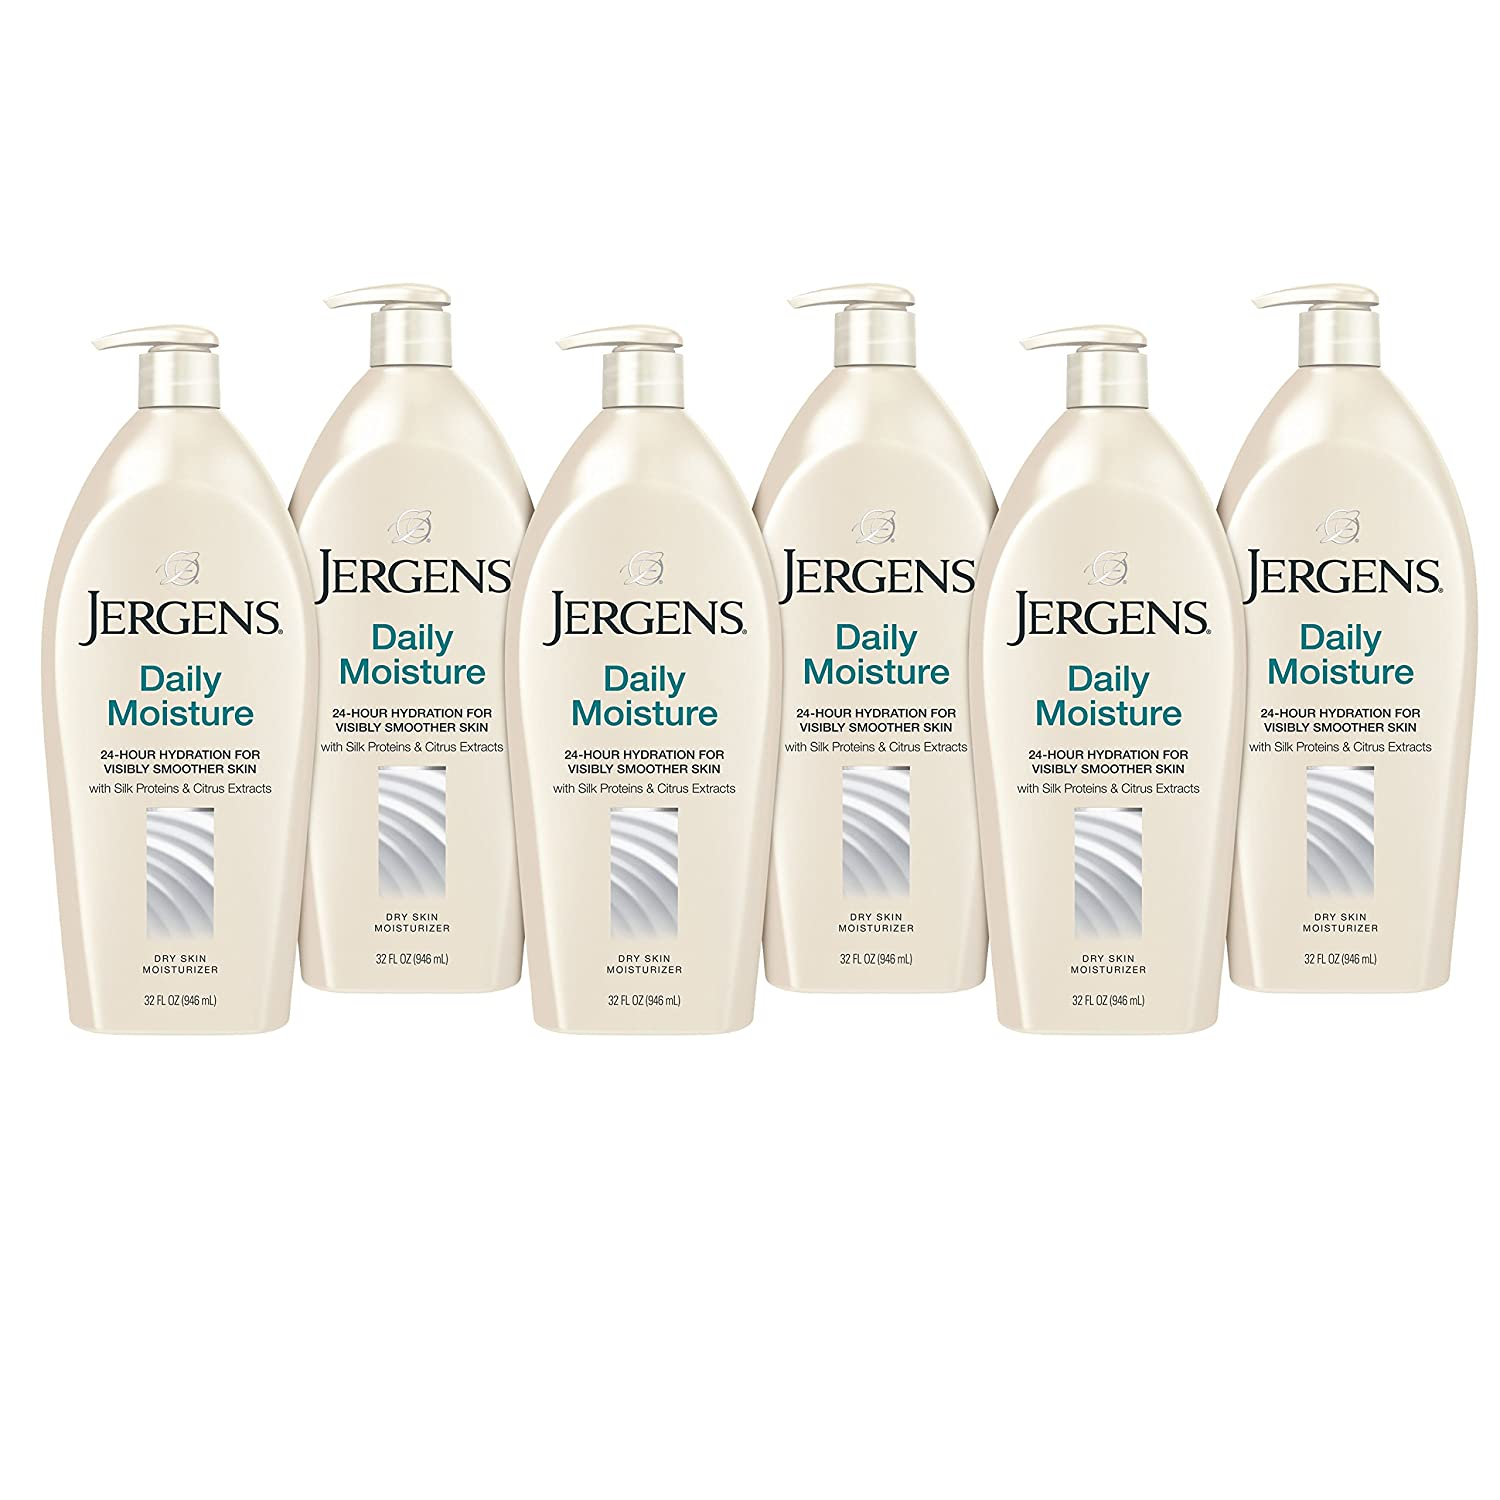 Jergens Daily Moisture Dry Skin Moisturizer, 32 Ounces (Pack of 6)